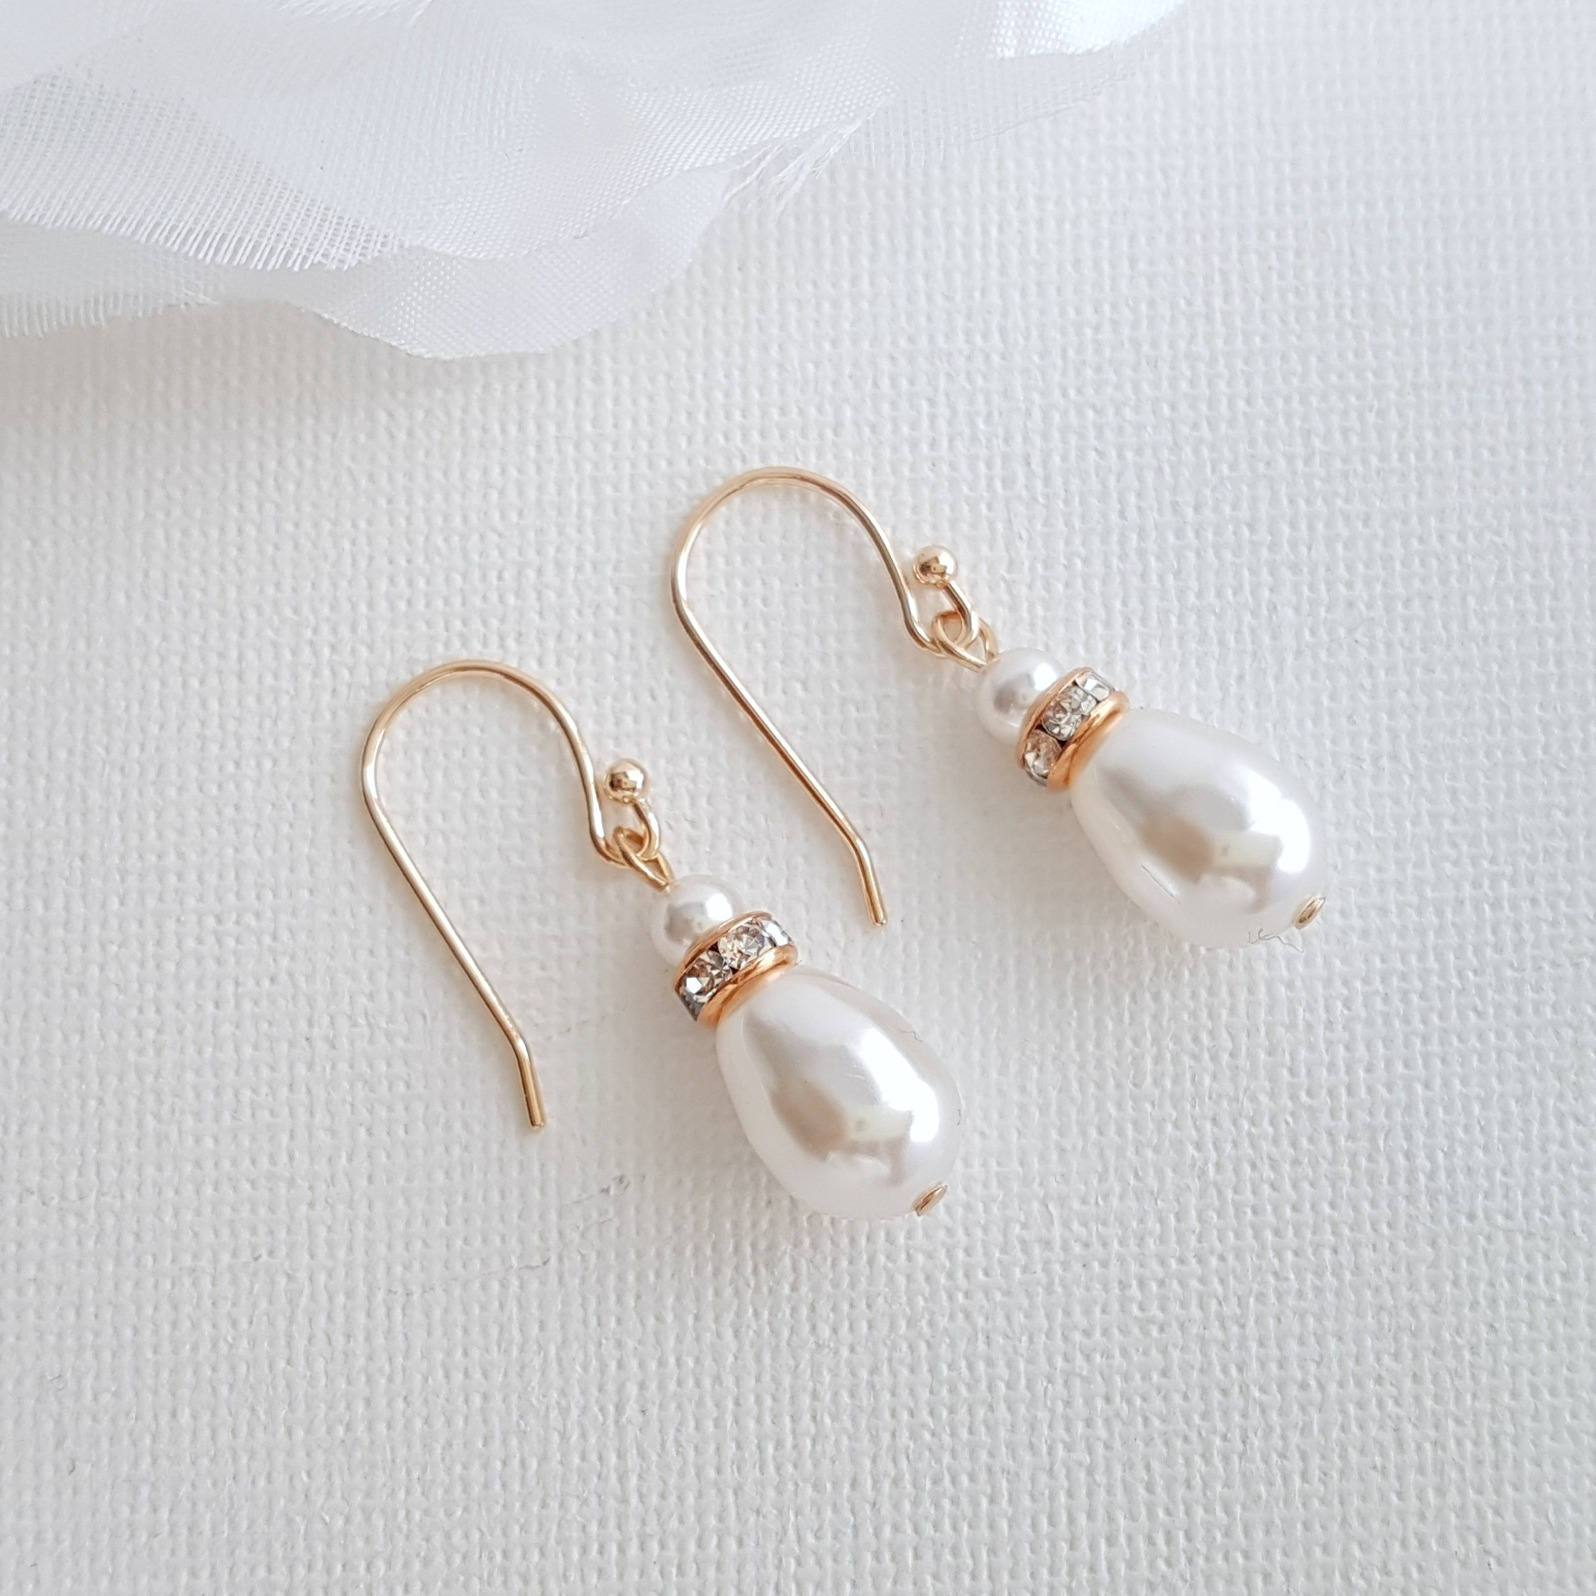 Simple Drop Earrings in Rose Gold for Weddings- June - PoetryDesigns